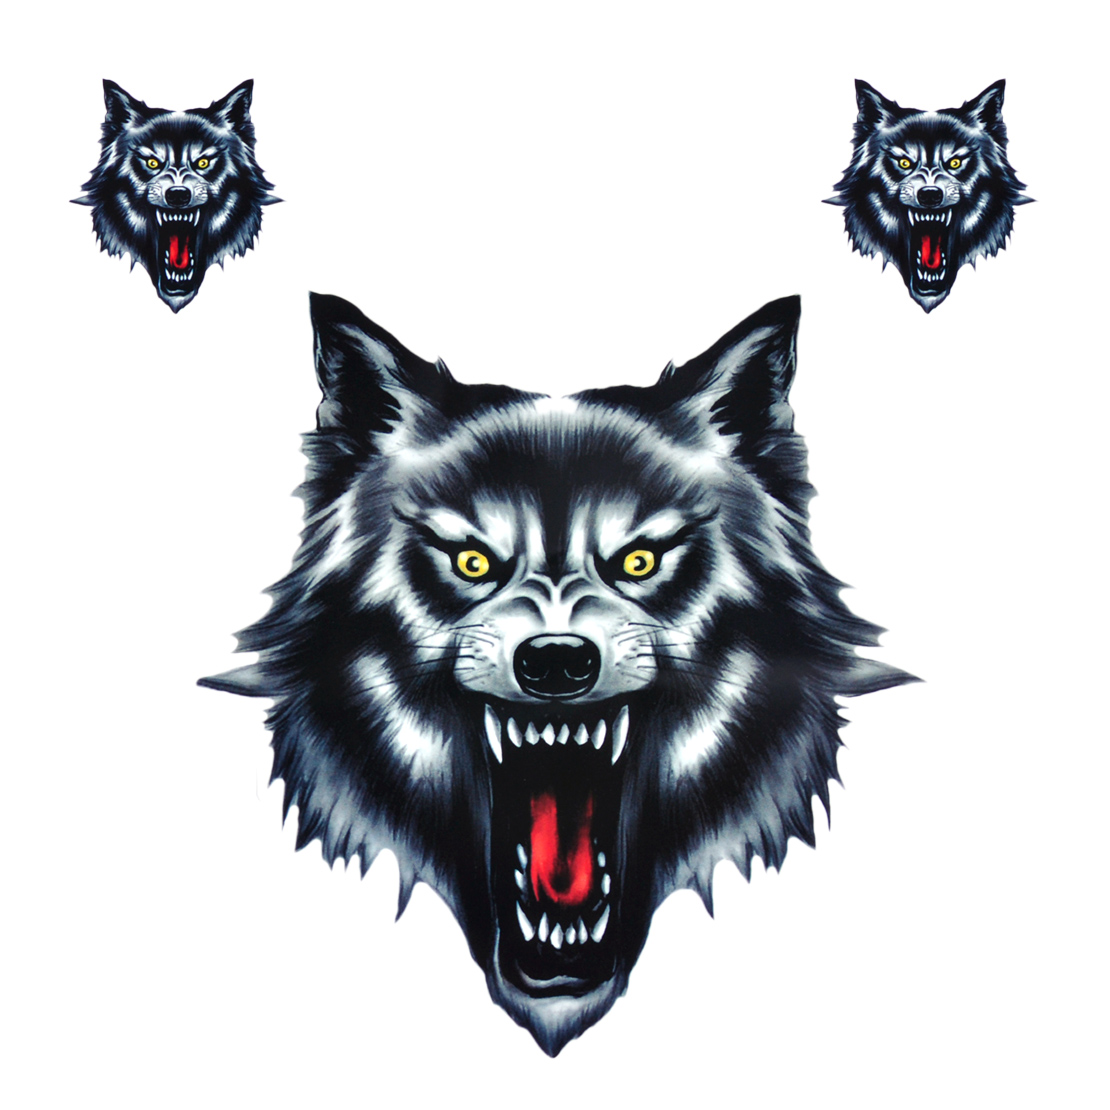 DWCX Vinyl Wolf Head Decals Waterproof Funny Self-adhesive Sticker for Motorcycle Motorbike Car Door Stickers Truck Helmet Decor